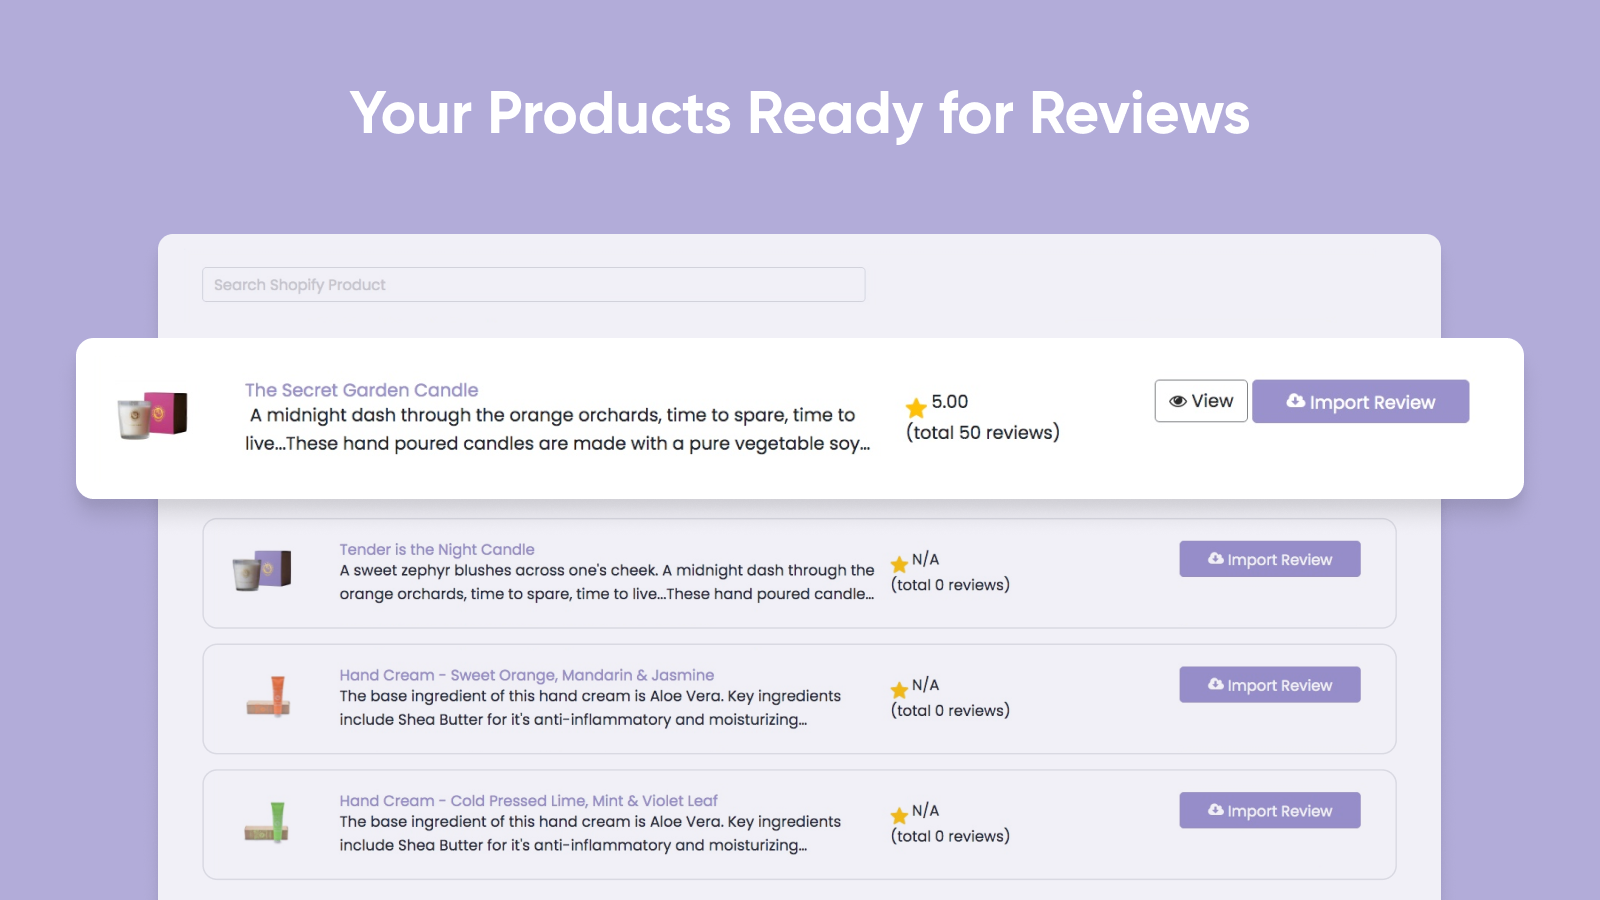 Your Products Ready for Reviews